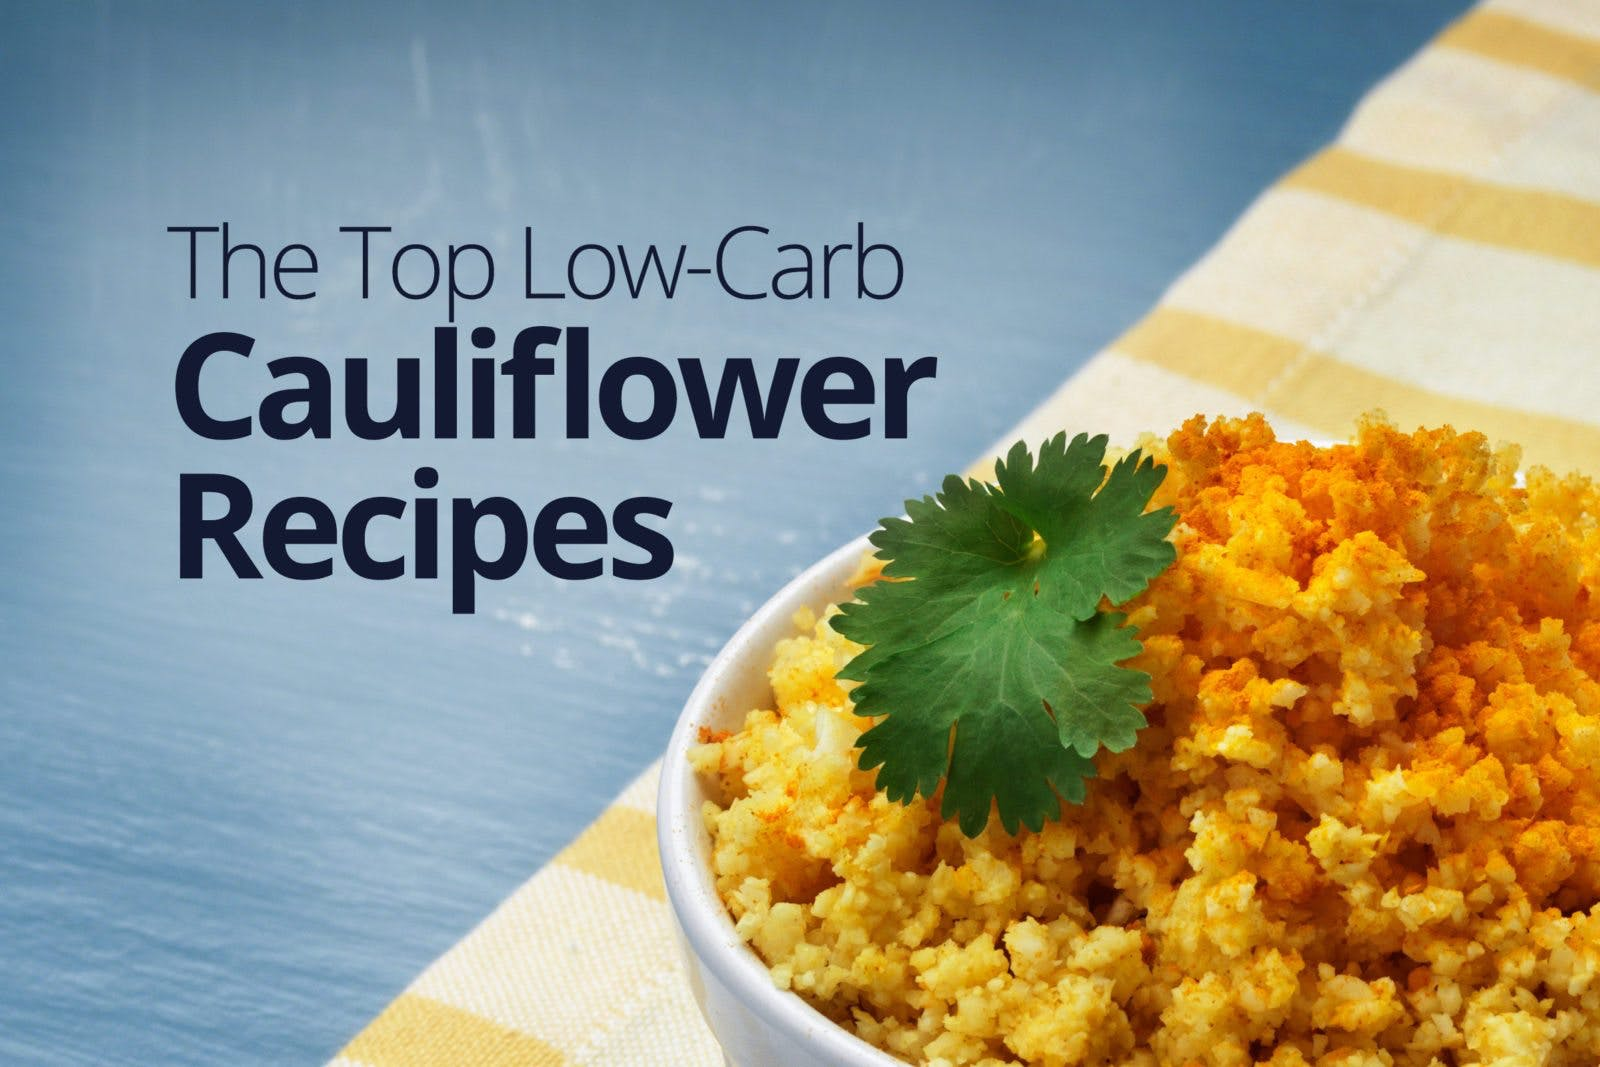 Top 18 low-carb cauliflower recipes